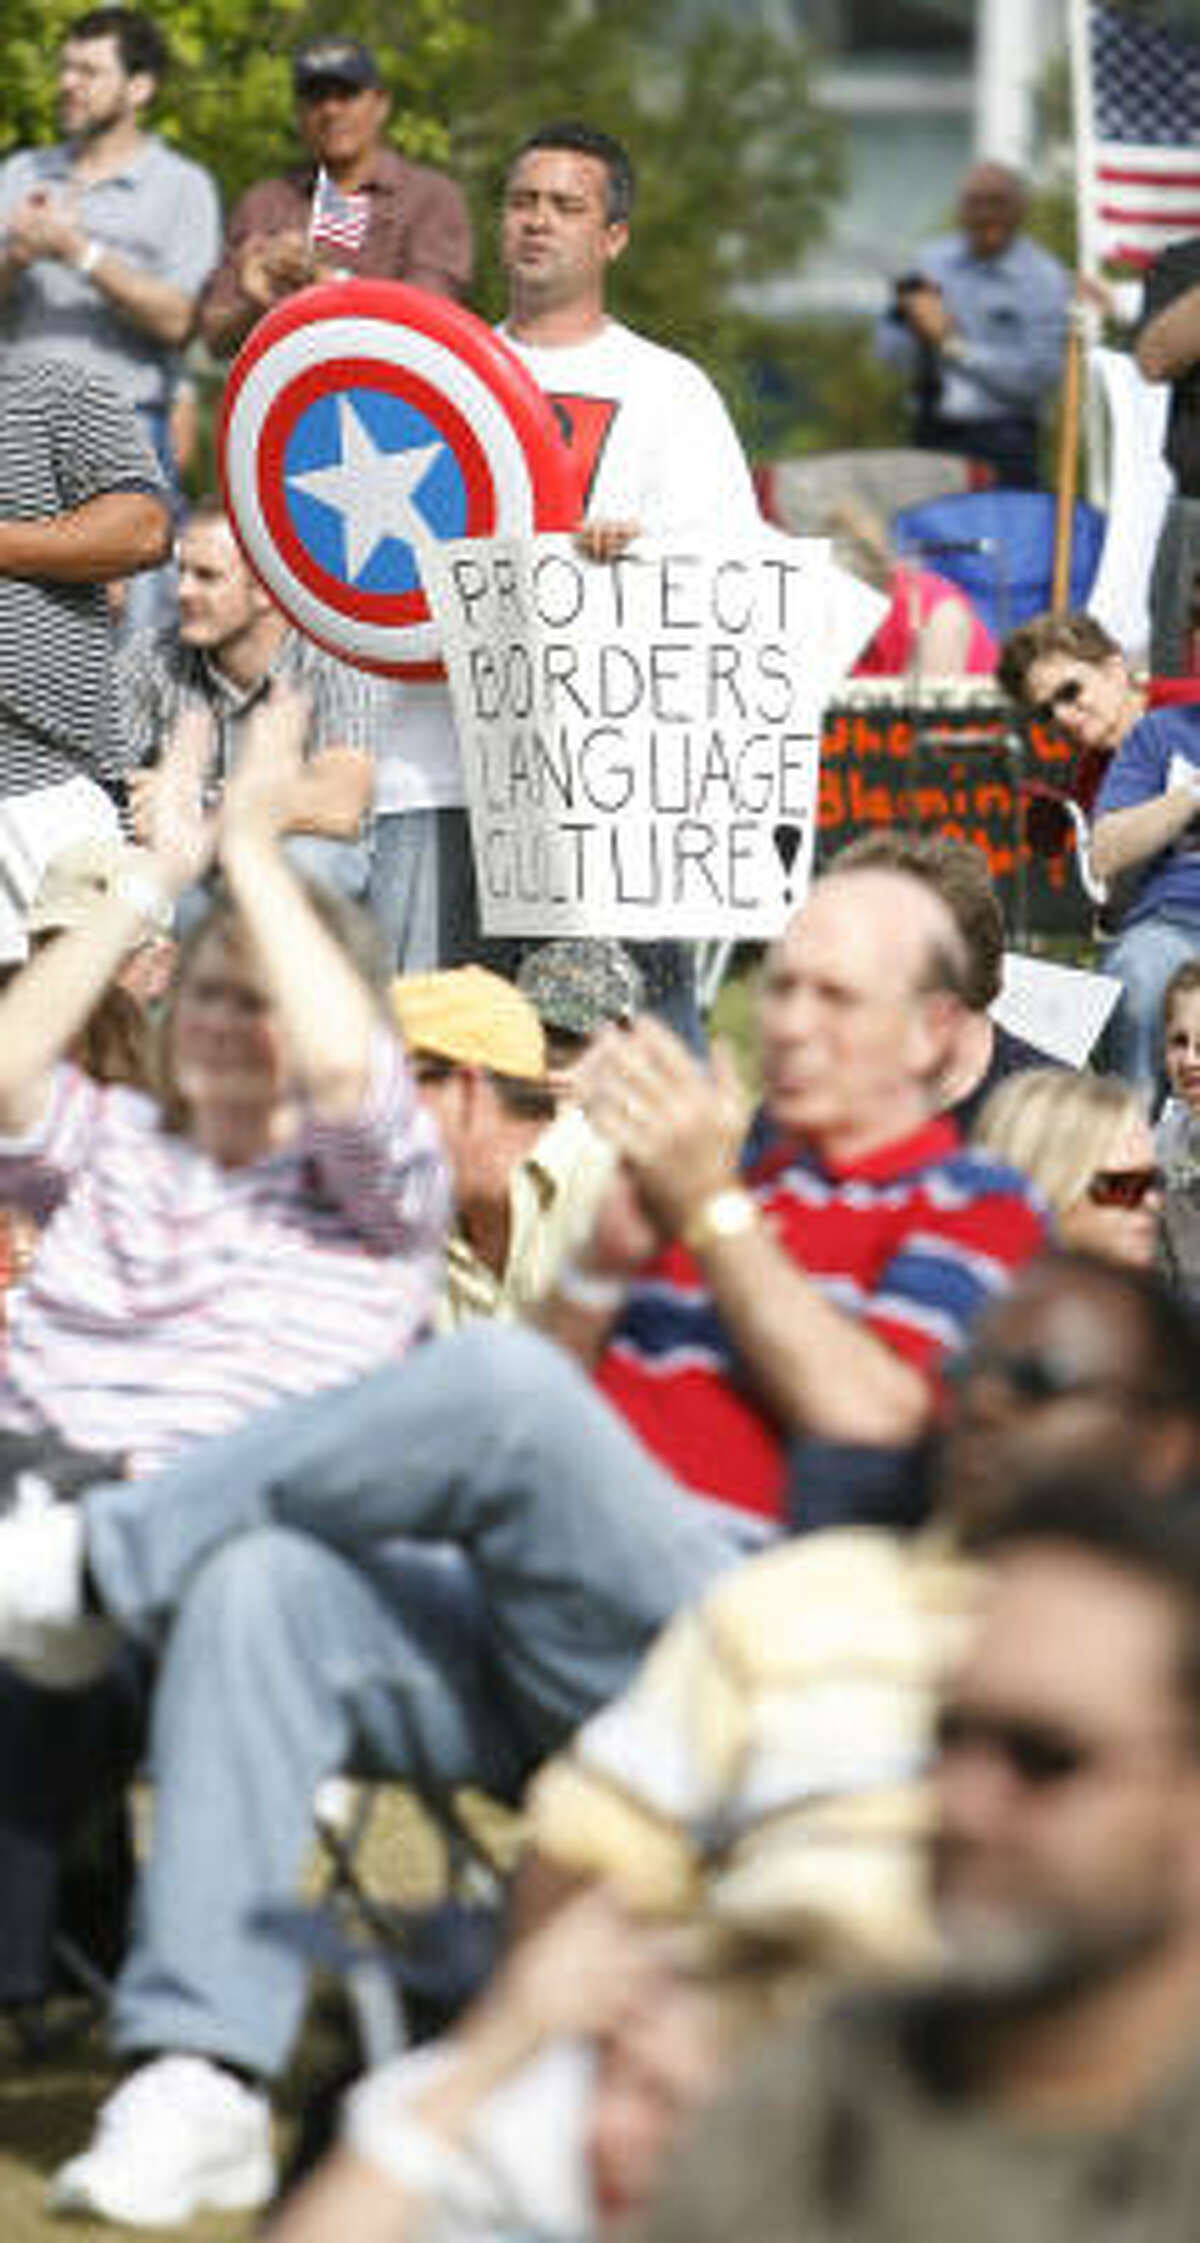 Bryan Deleon, shown holding a Captain America shield, joins about 200 other people at a tea party rally at Discovery Green Park on Thursday.